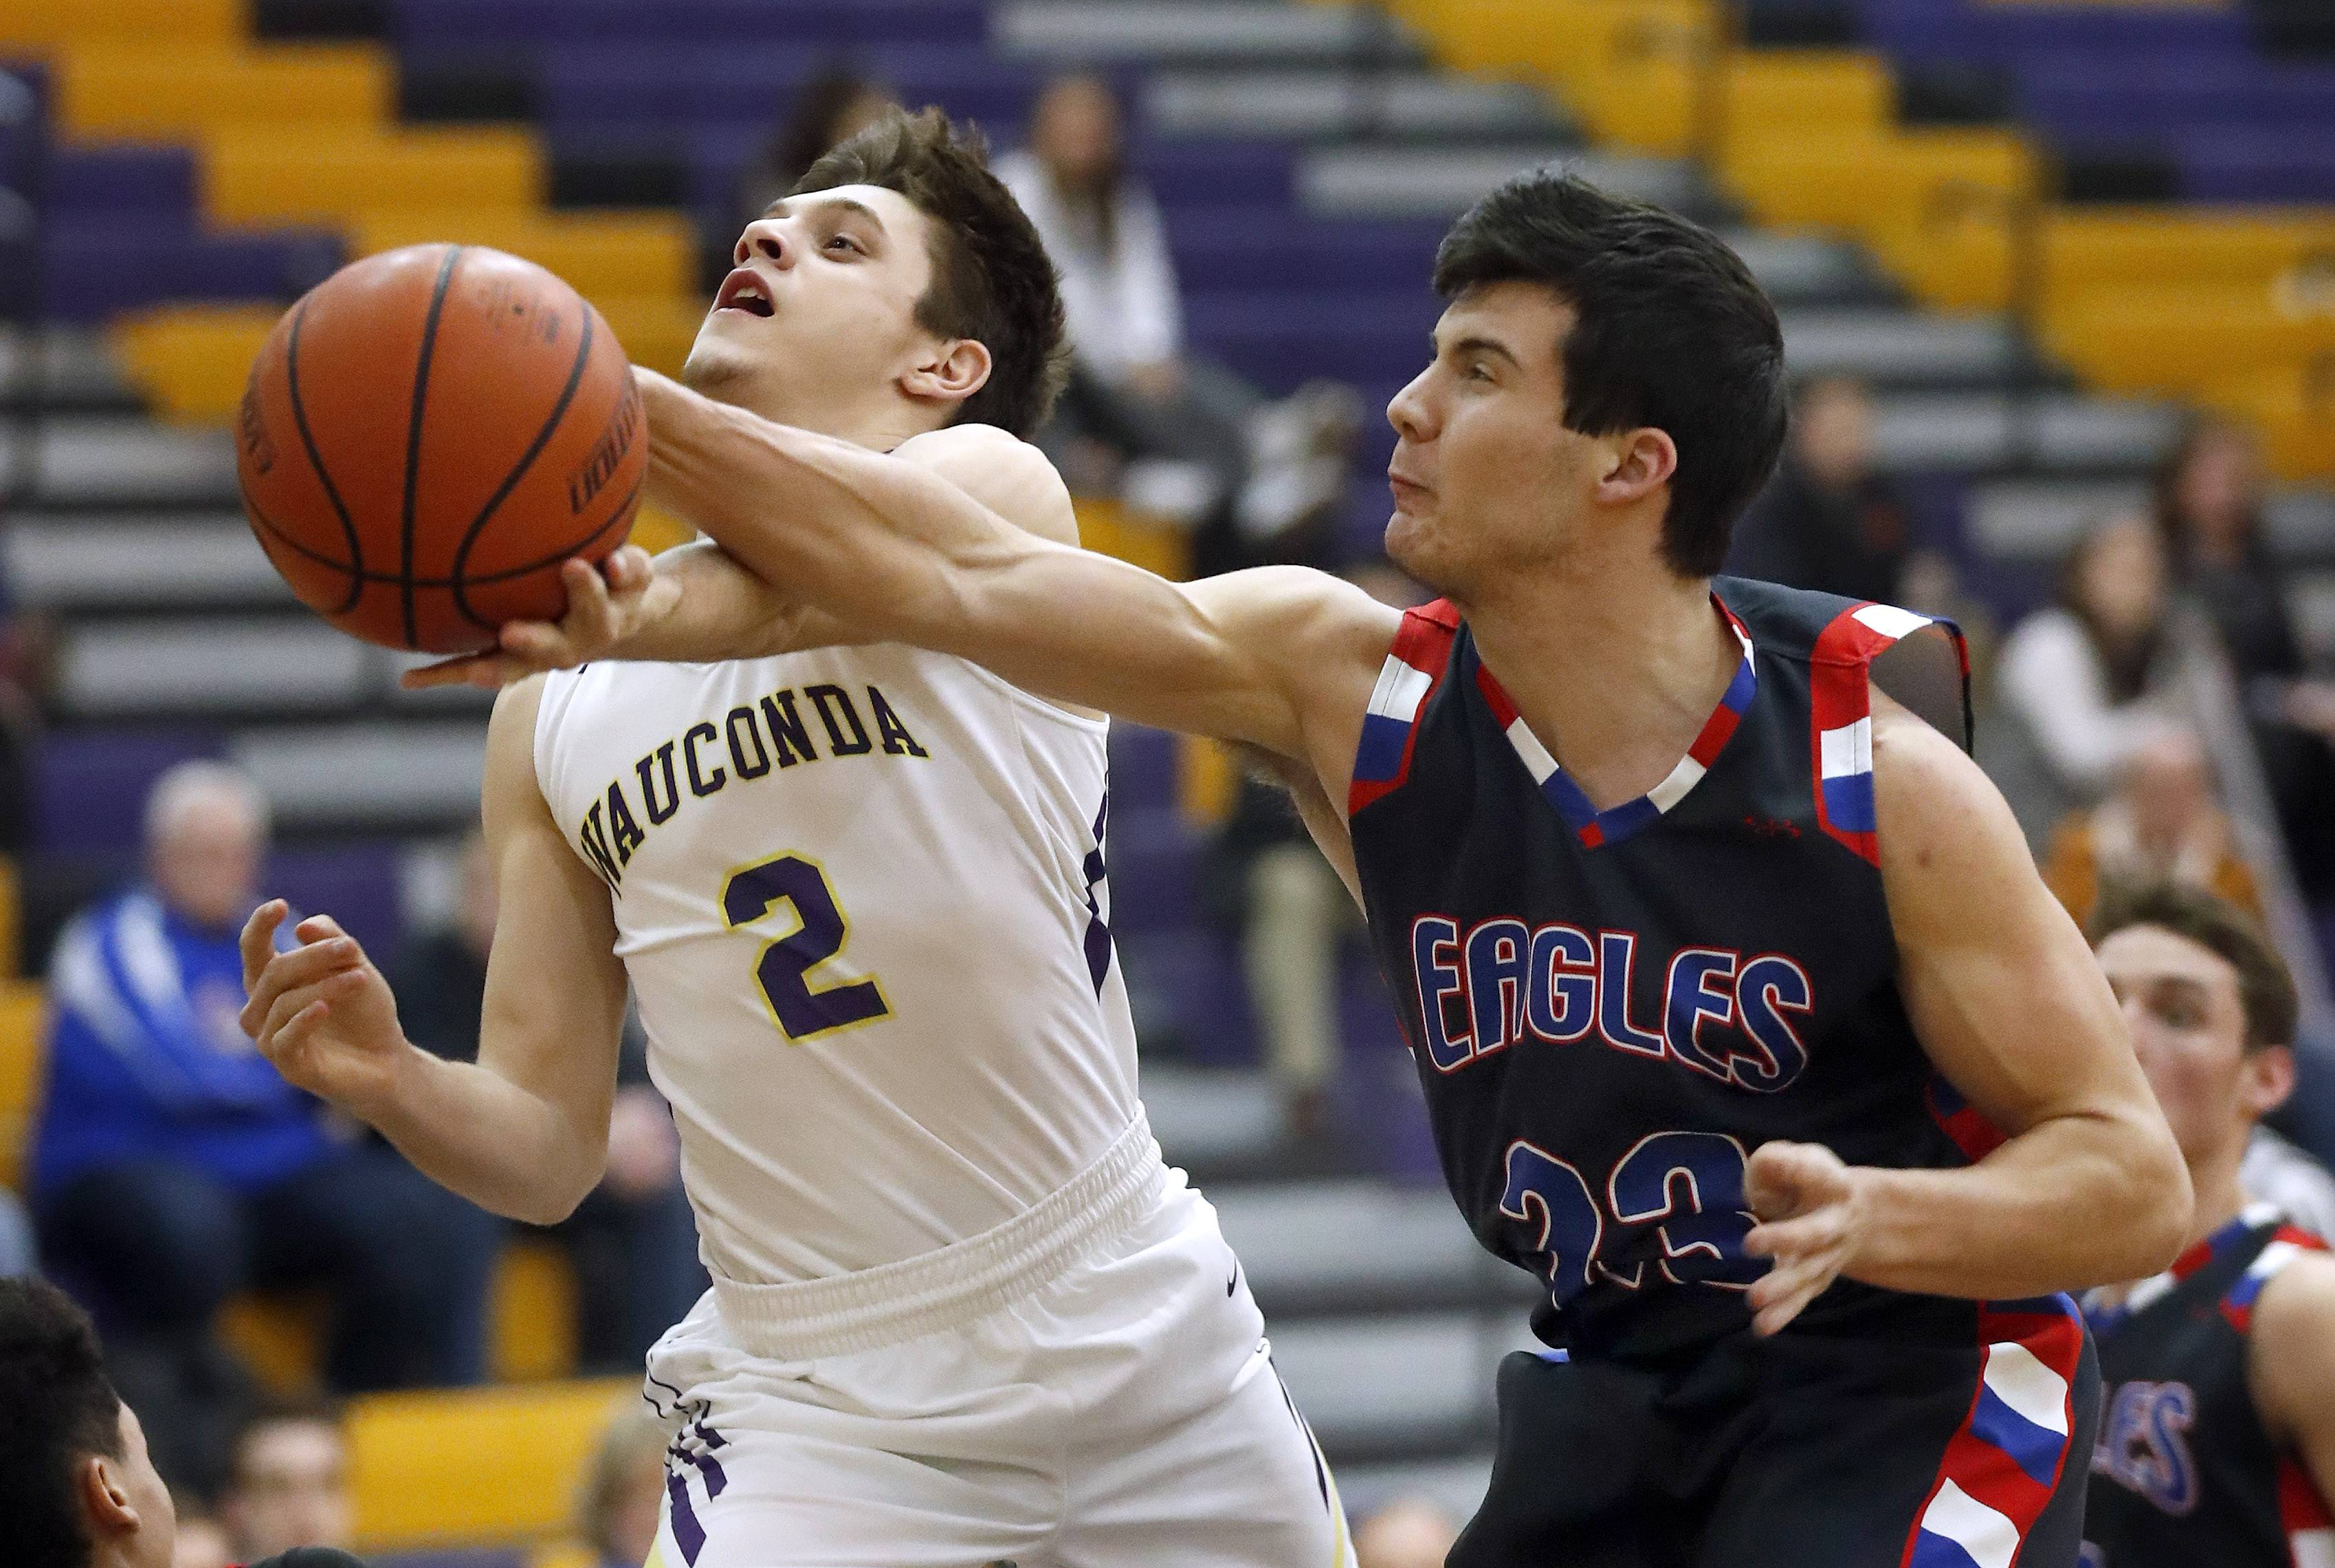 Wauconda's Nick Rinchiuso (2) has his shot blocked by Lakes' Ethan Greenfield on Tuesday night in Wauconda.